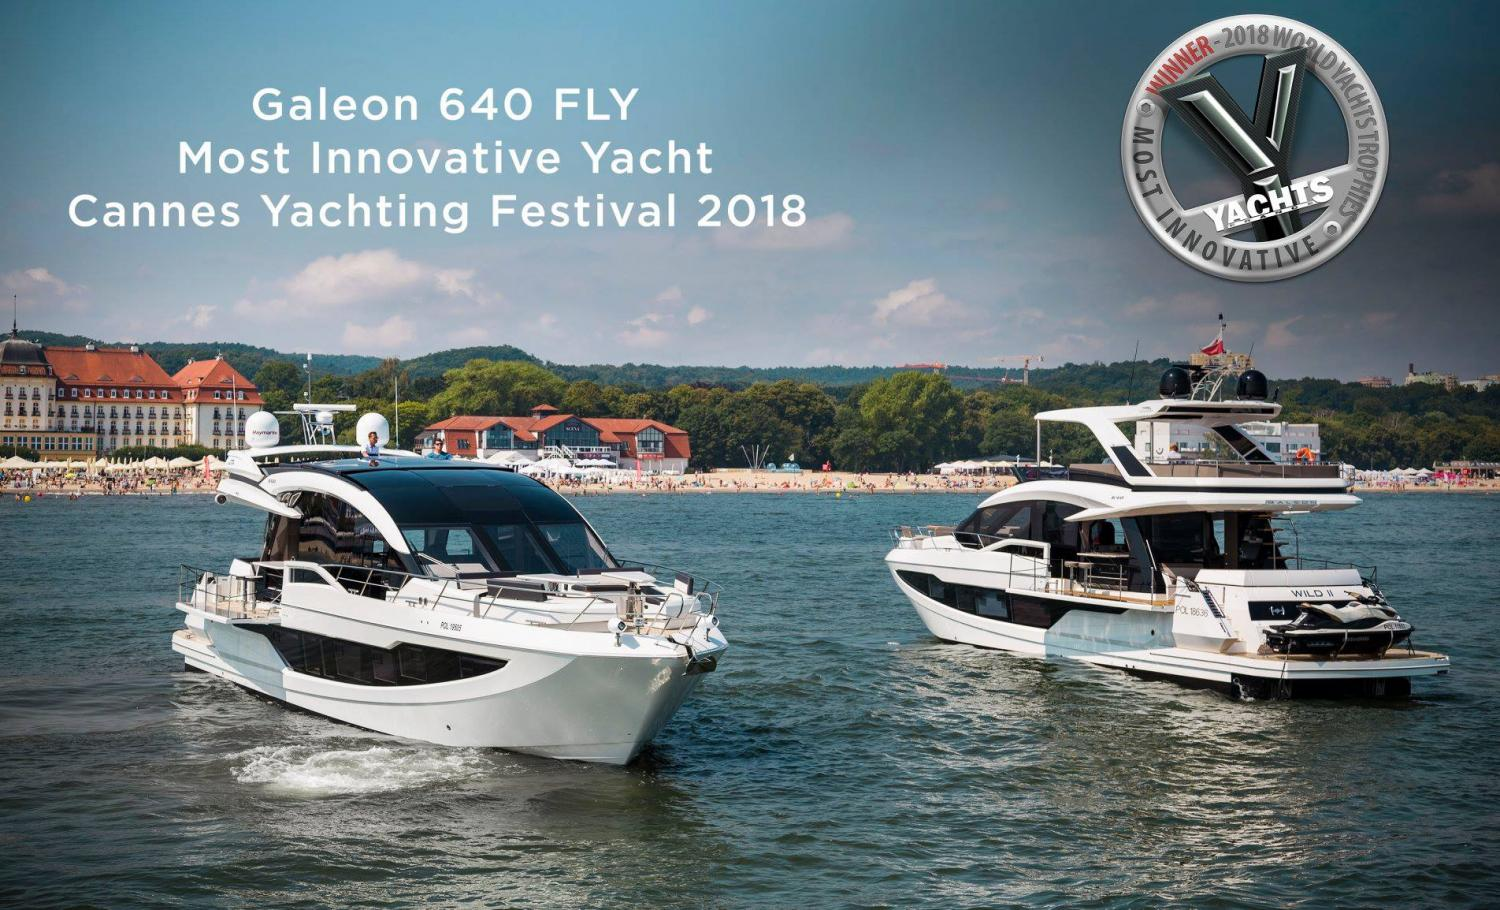 Image 4 for Galeon 640 Fly Wins for Innovation